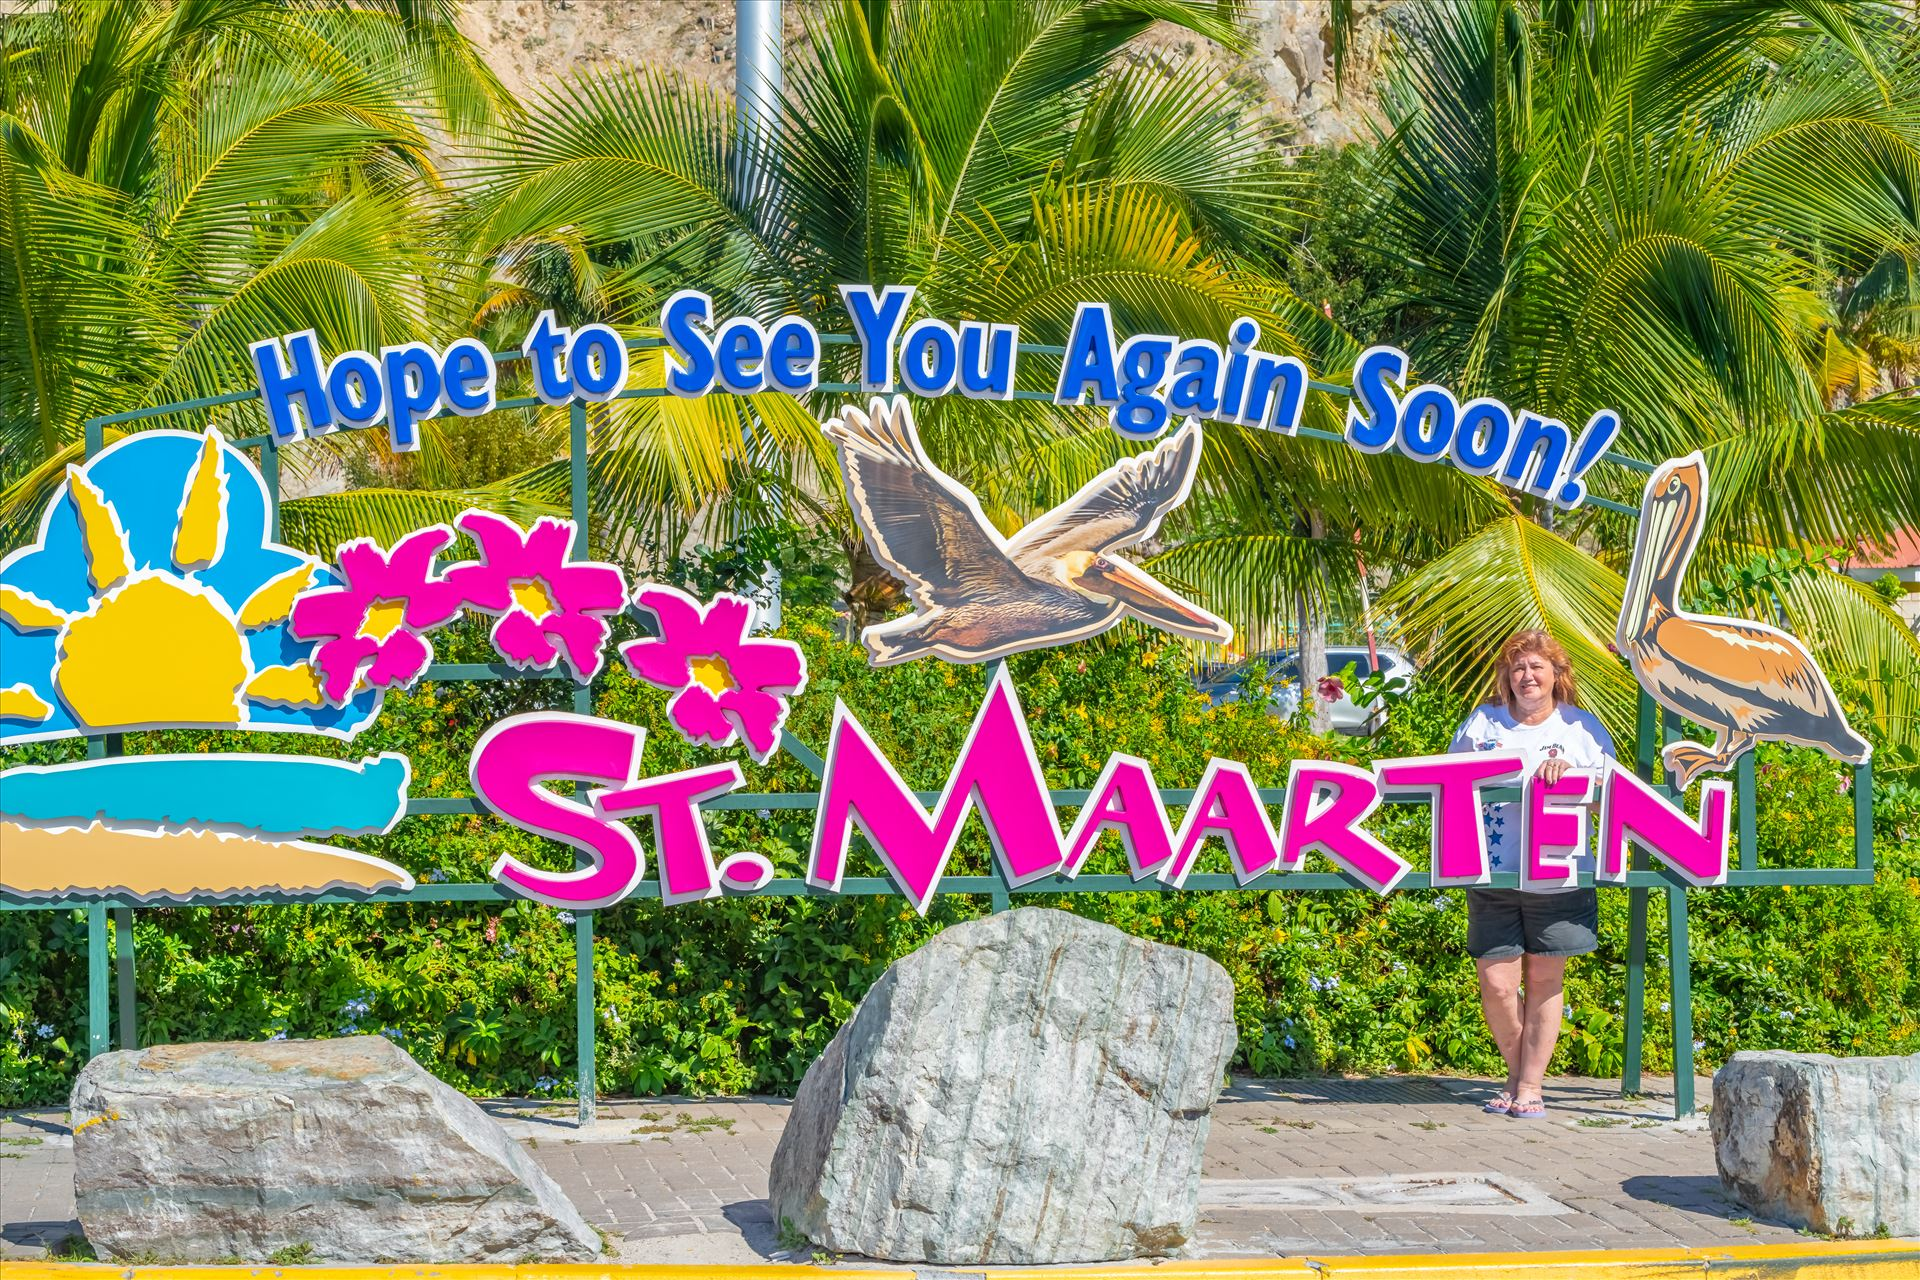 St. Maarten Lisa at the hope to see you again soon sign by Terry Kelly Photography